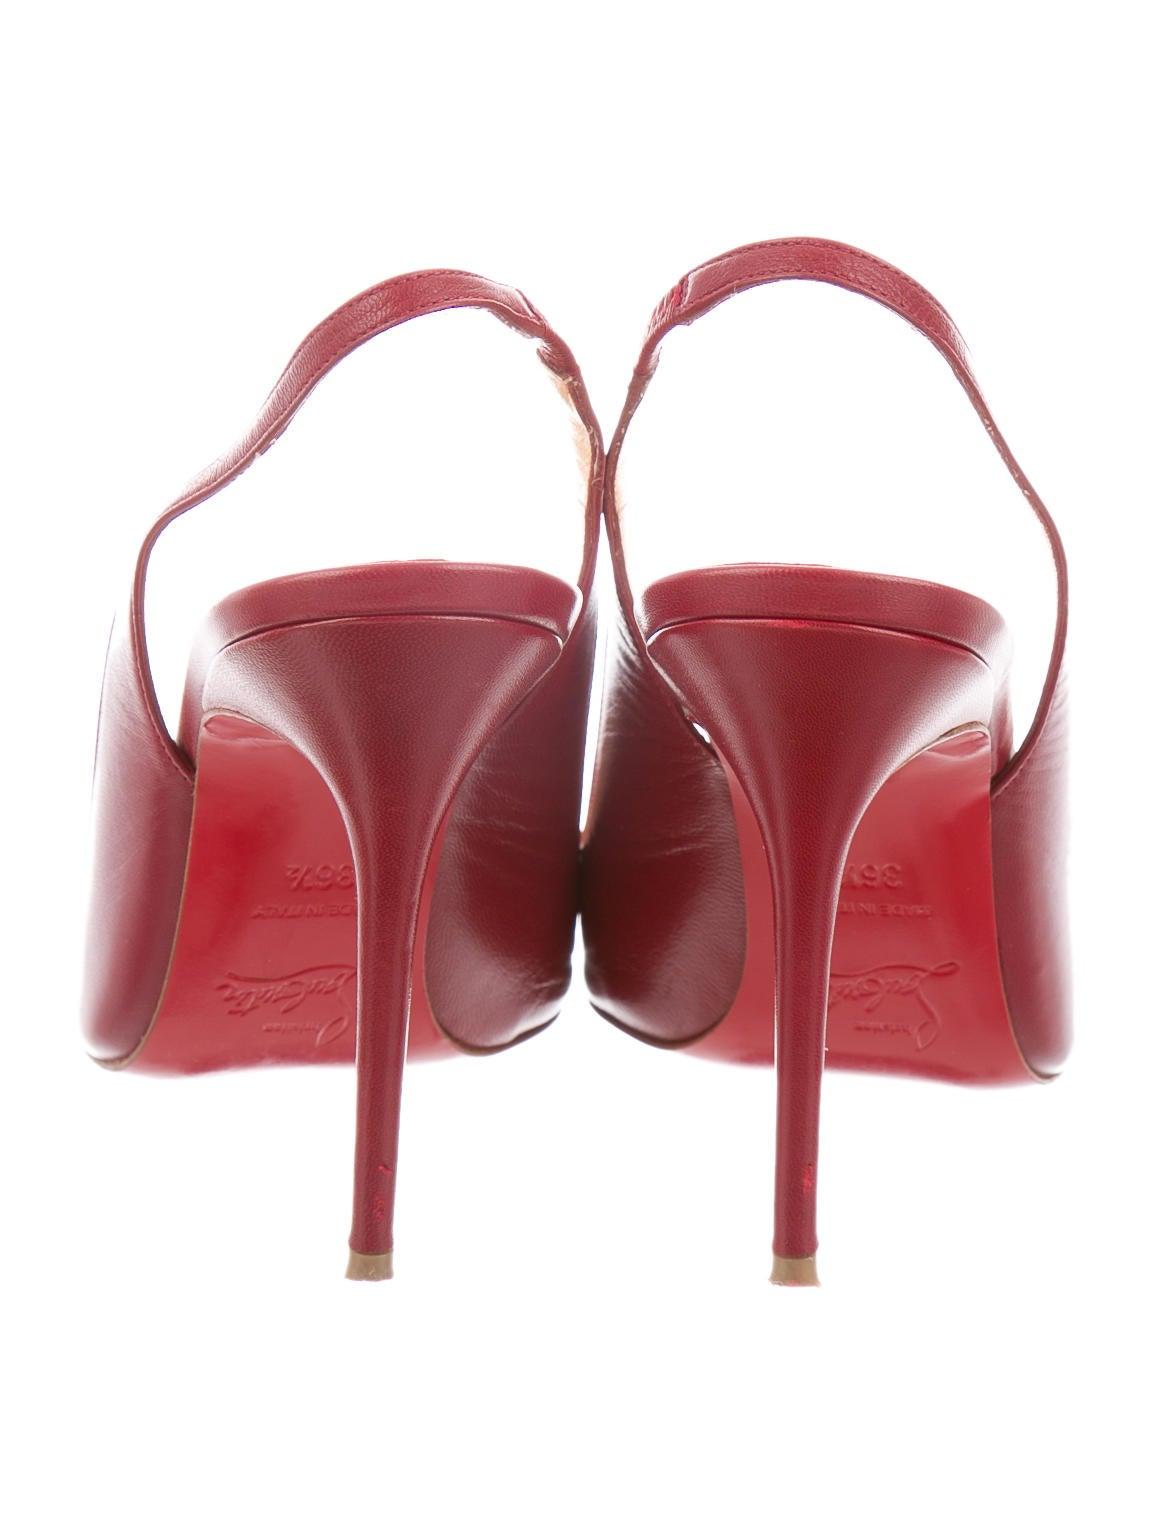 Christian Louboutin Fleuve 100 Slingback Pumps - Shoes - CHT42792 ...